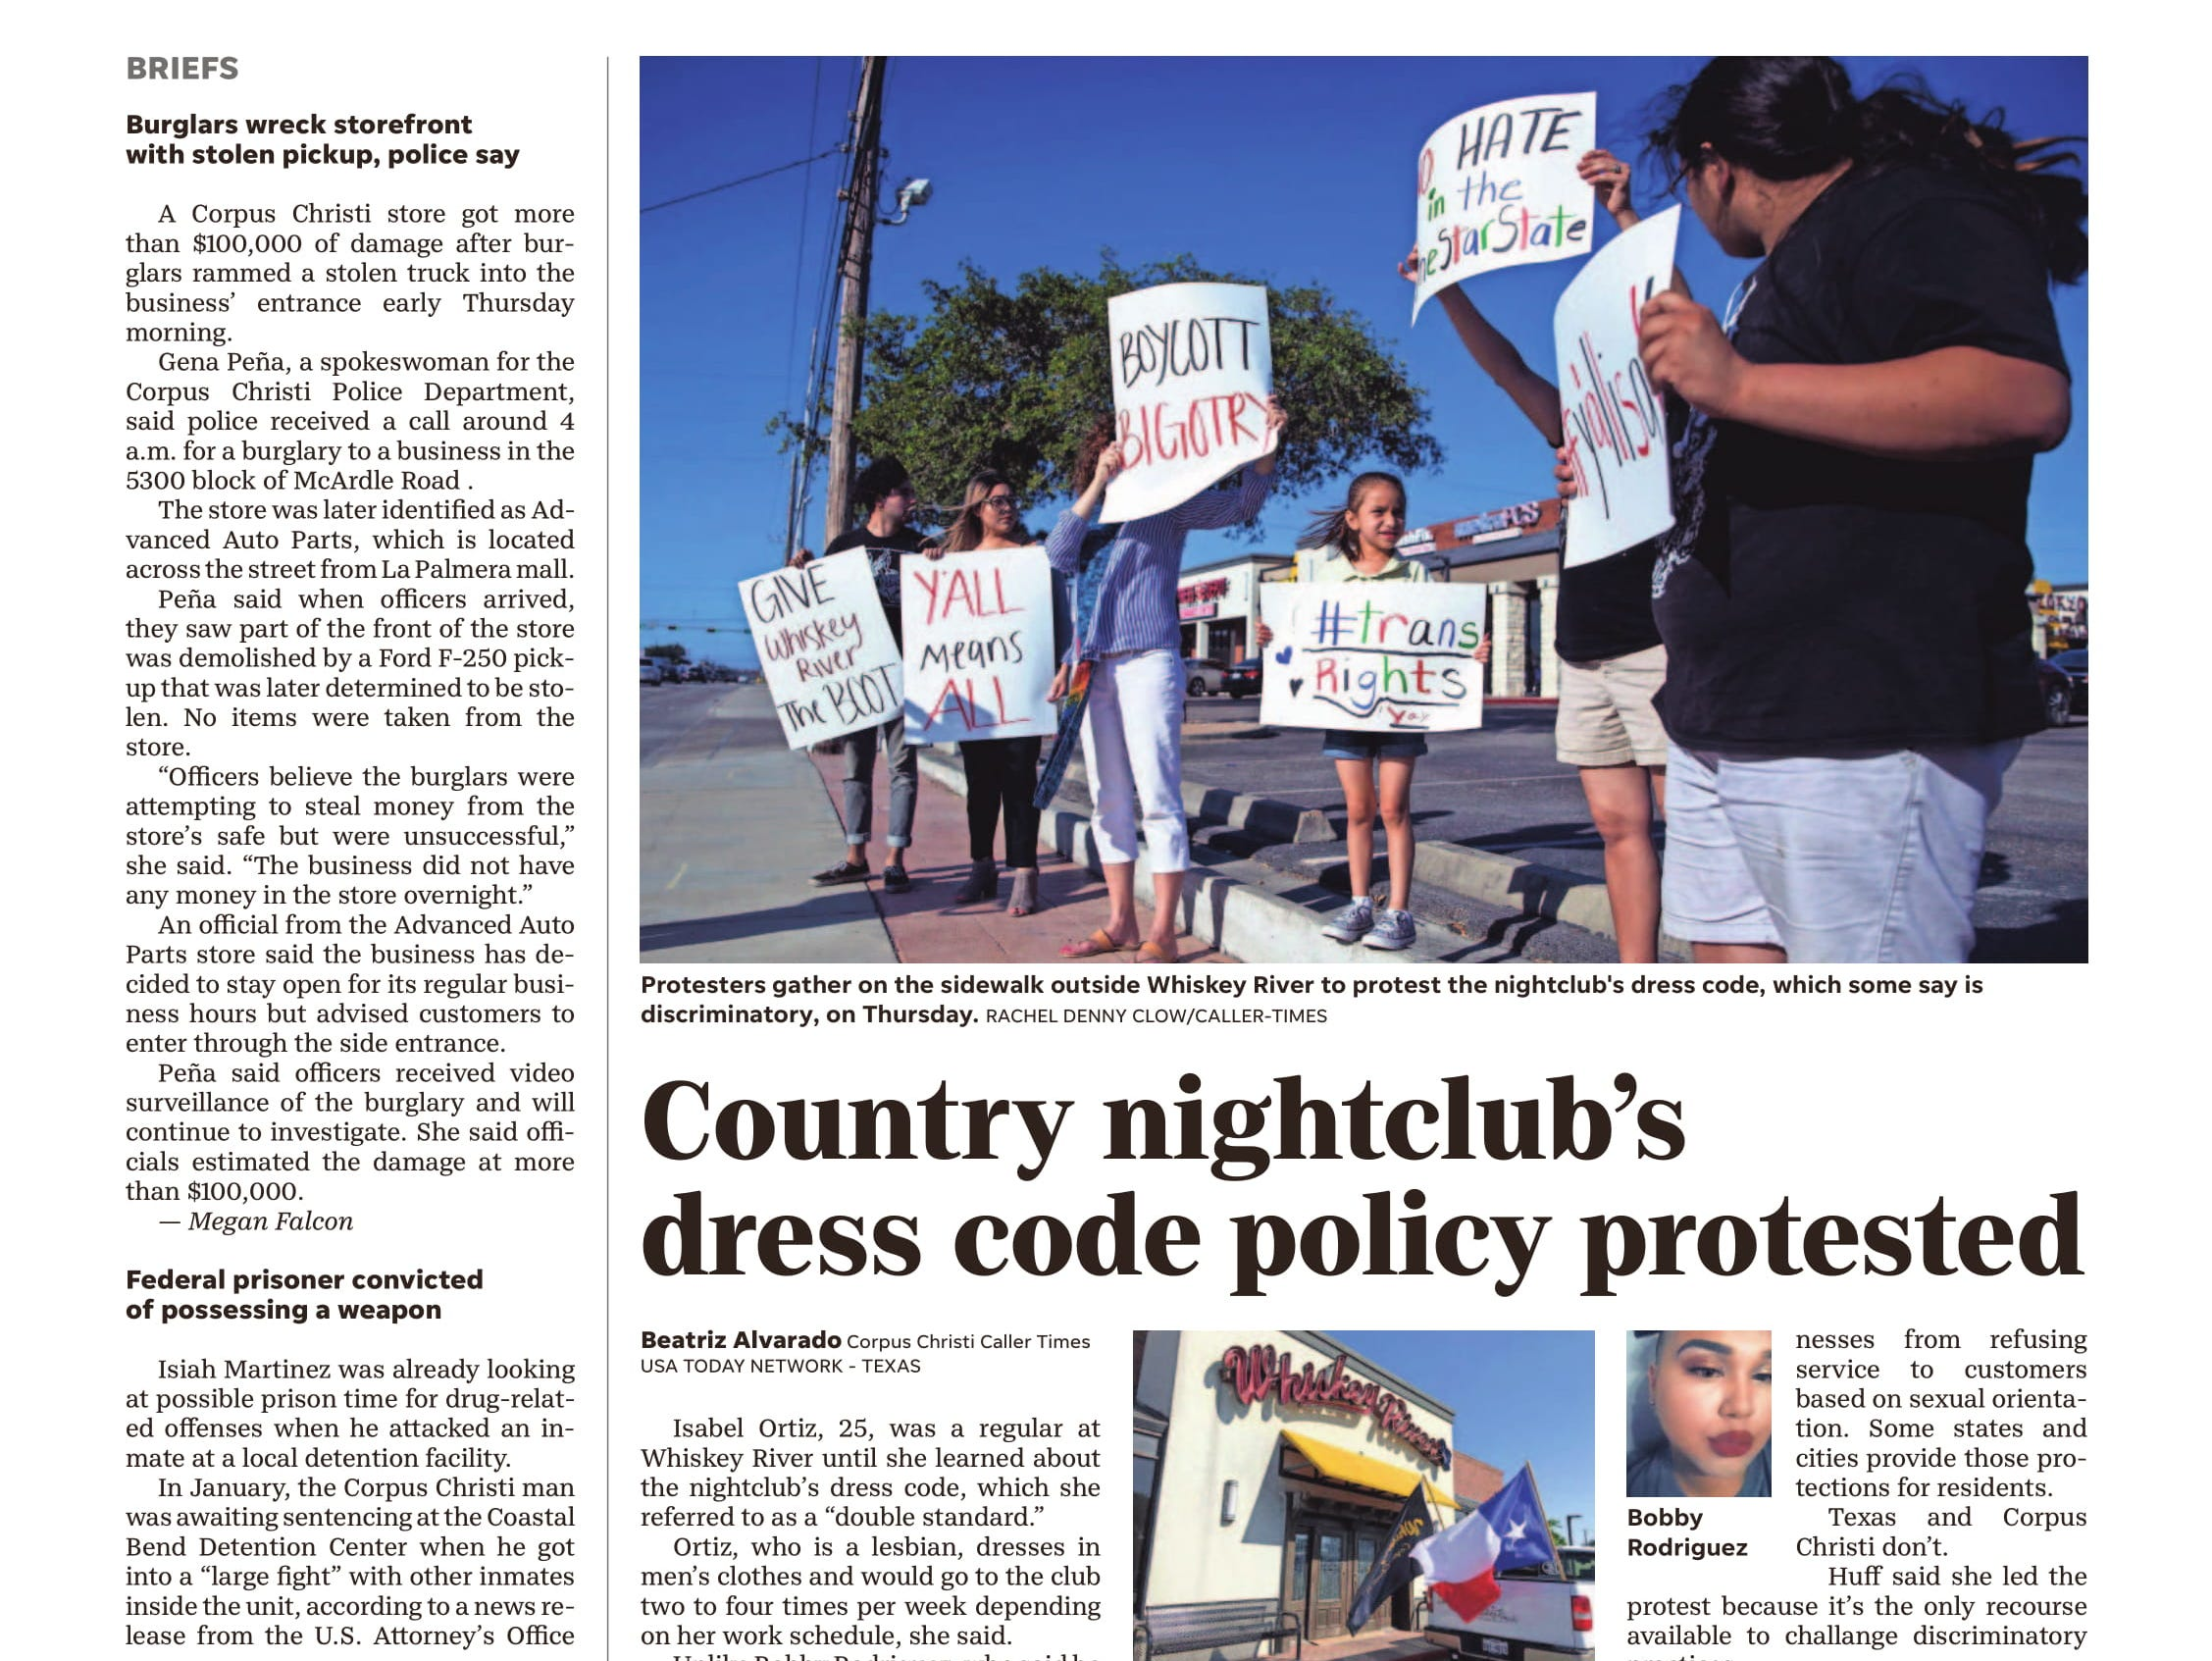 A page from the Caller-Times on May 18, 2018 featuring a story about LGBT patrons who were kicked out of a local country bar.